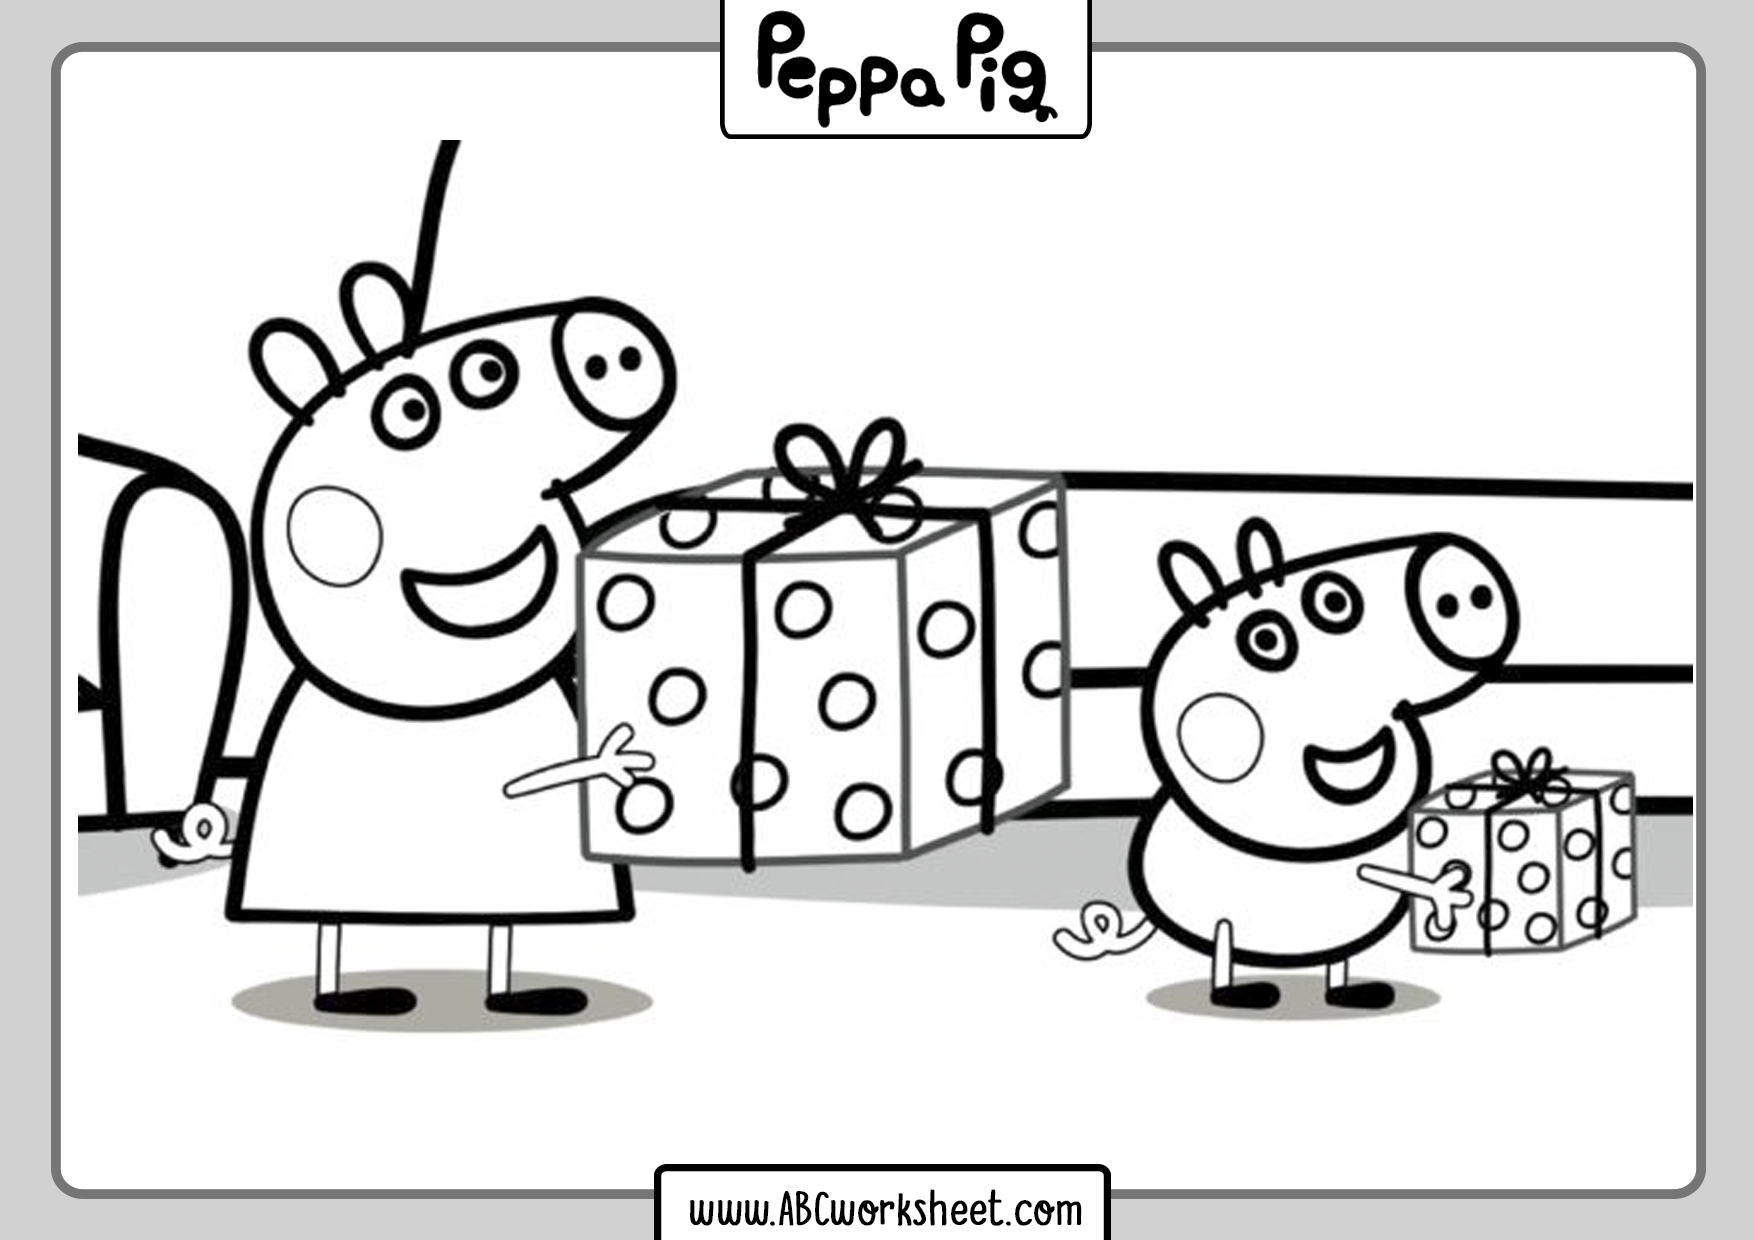 Peppa Pig Coloring Images